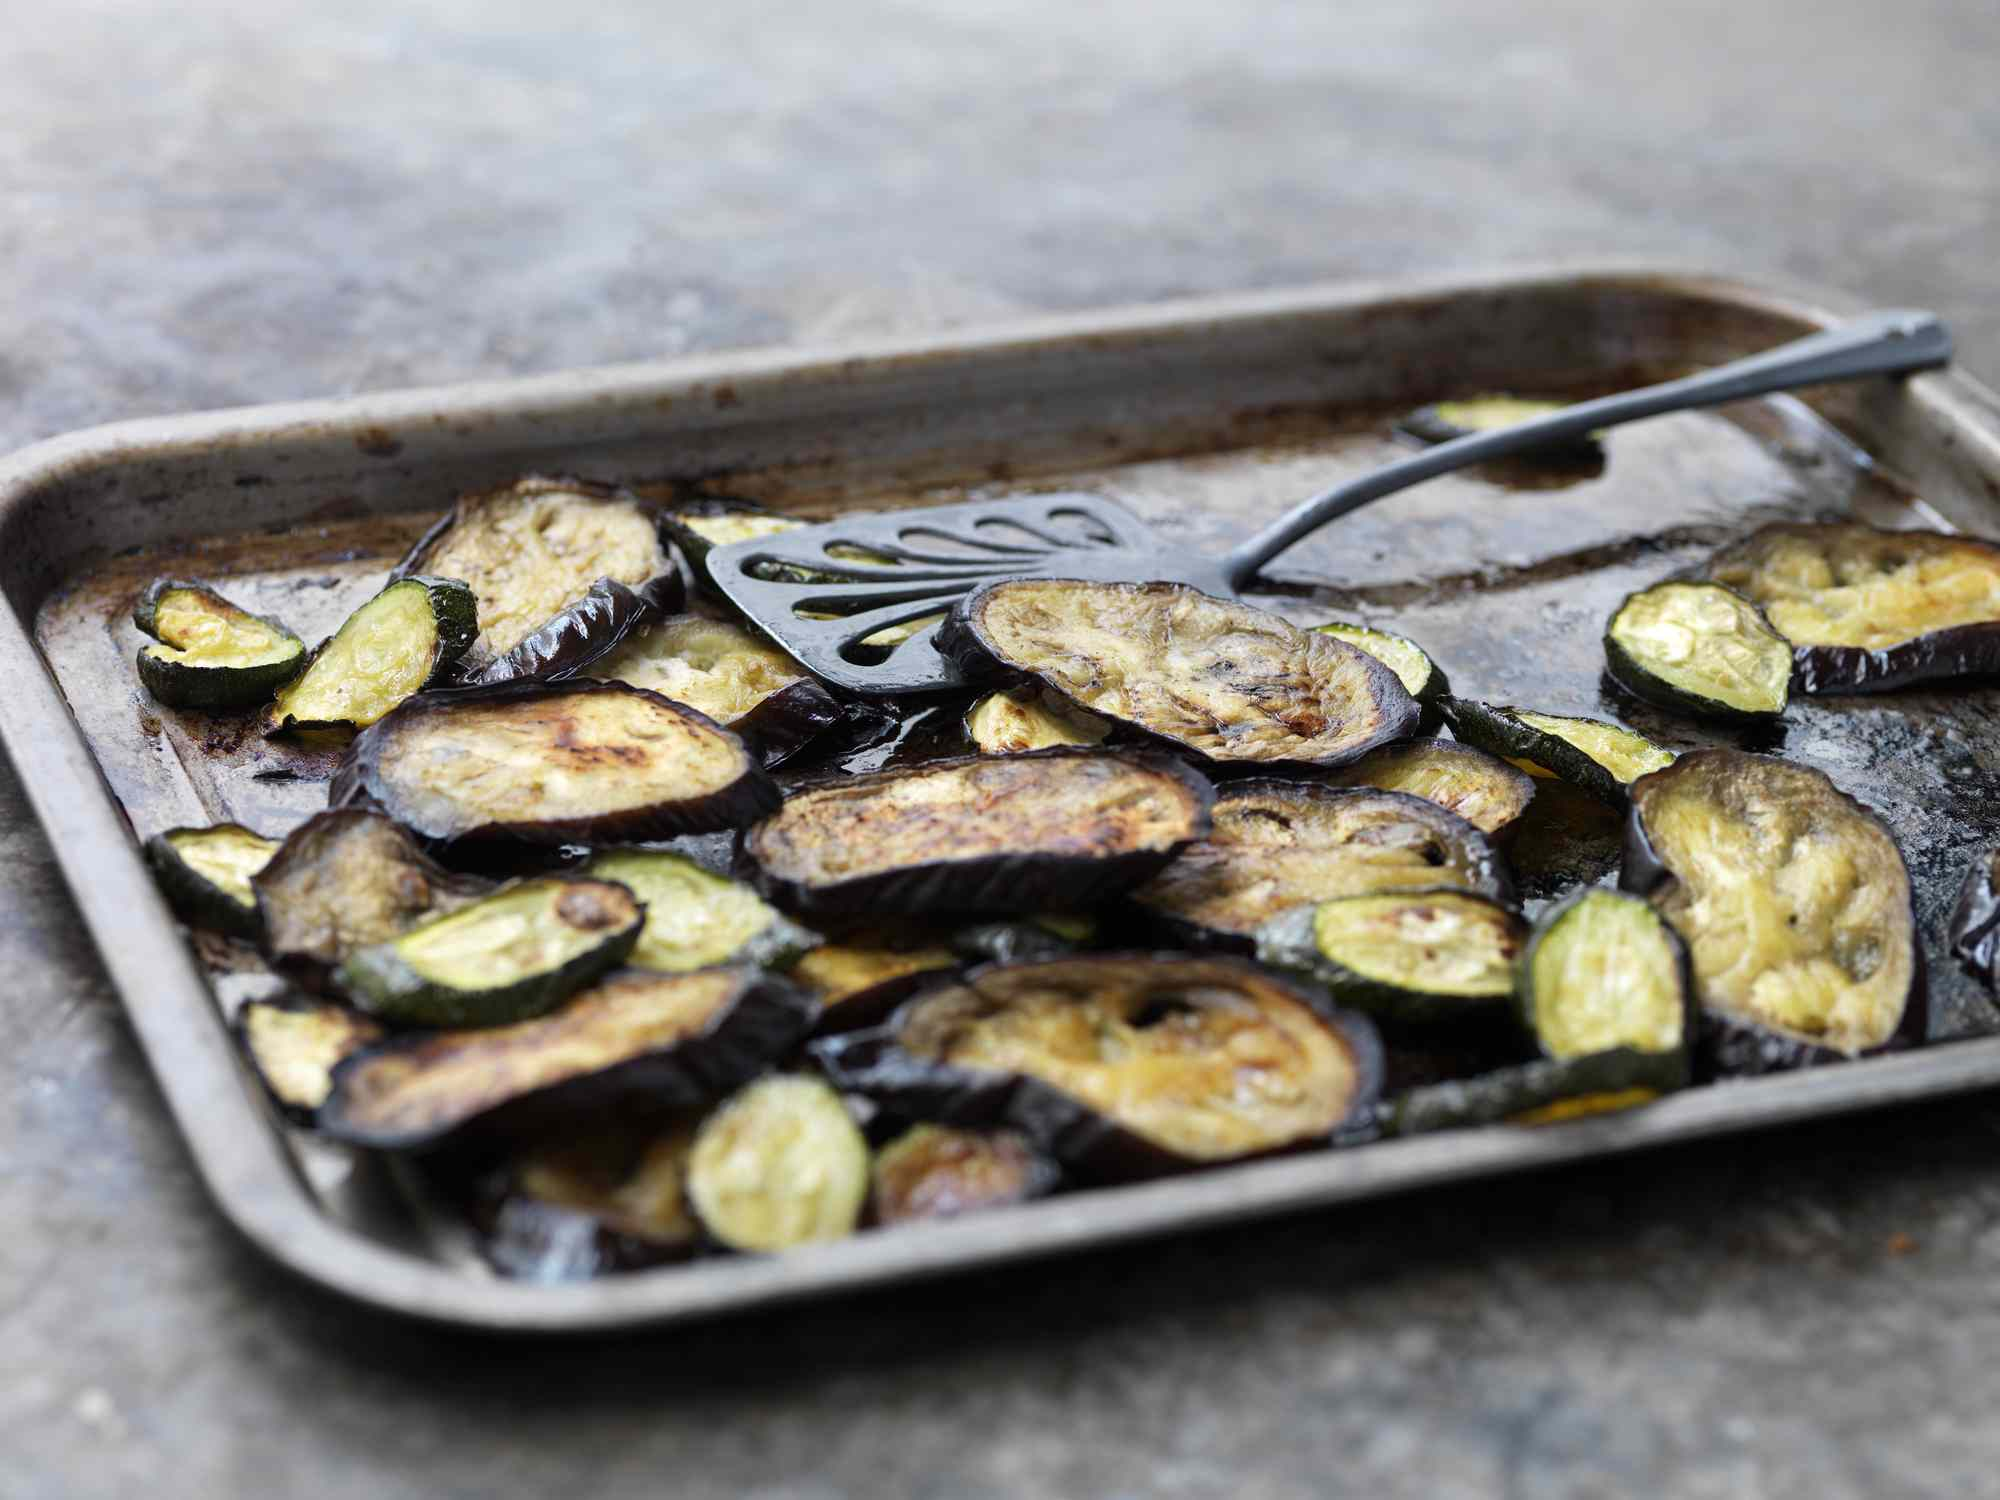 Sliced cooked eggplant on a pan